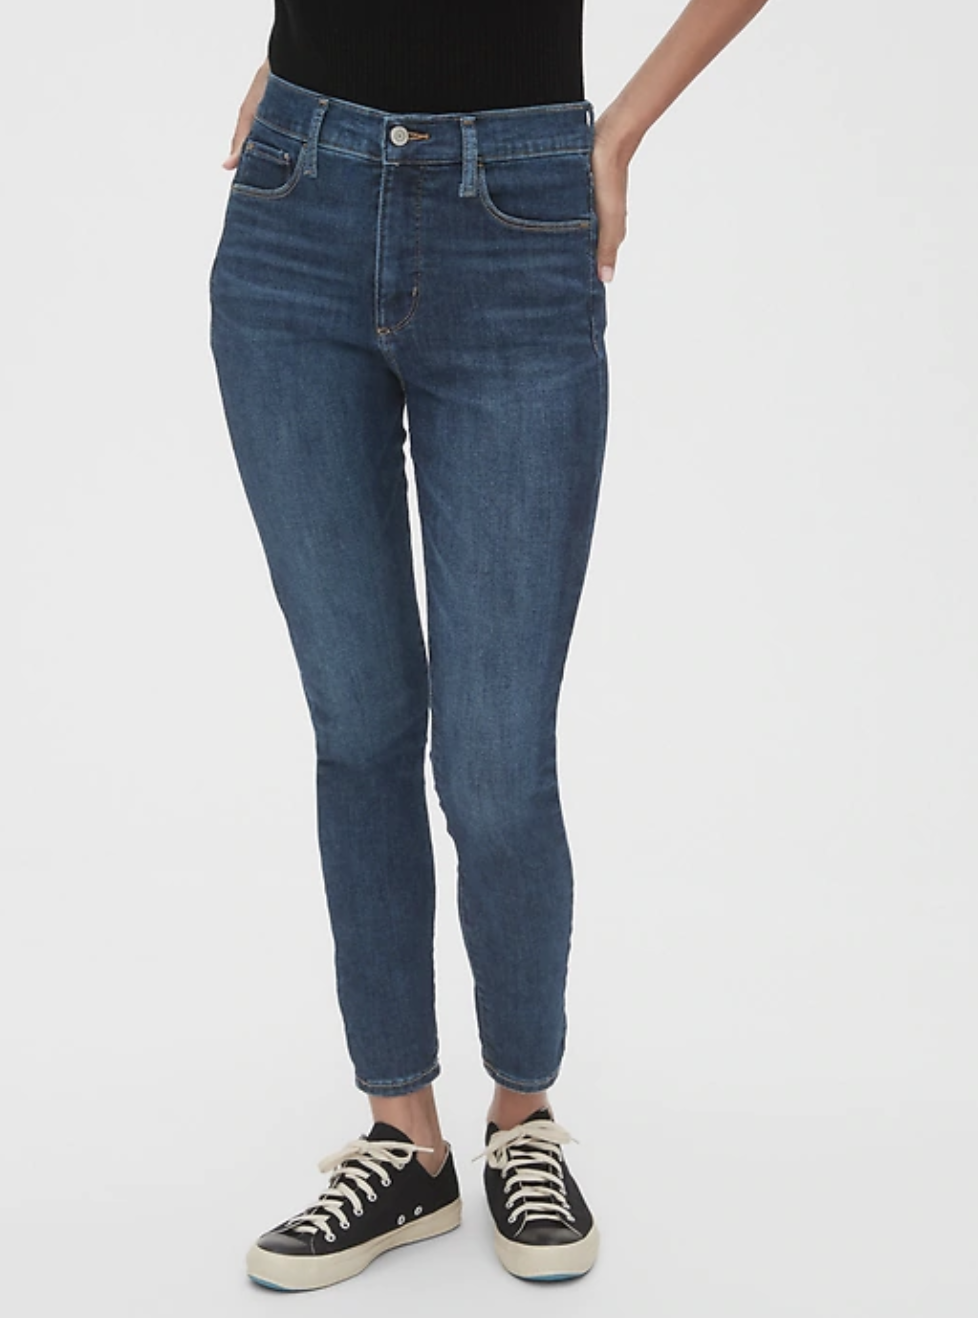 gap straight jeans, best jeans for each zodiac sign